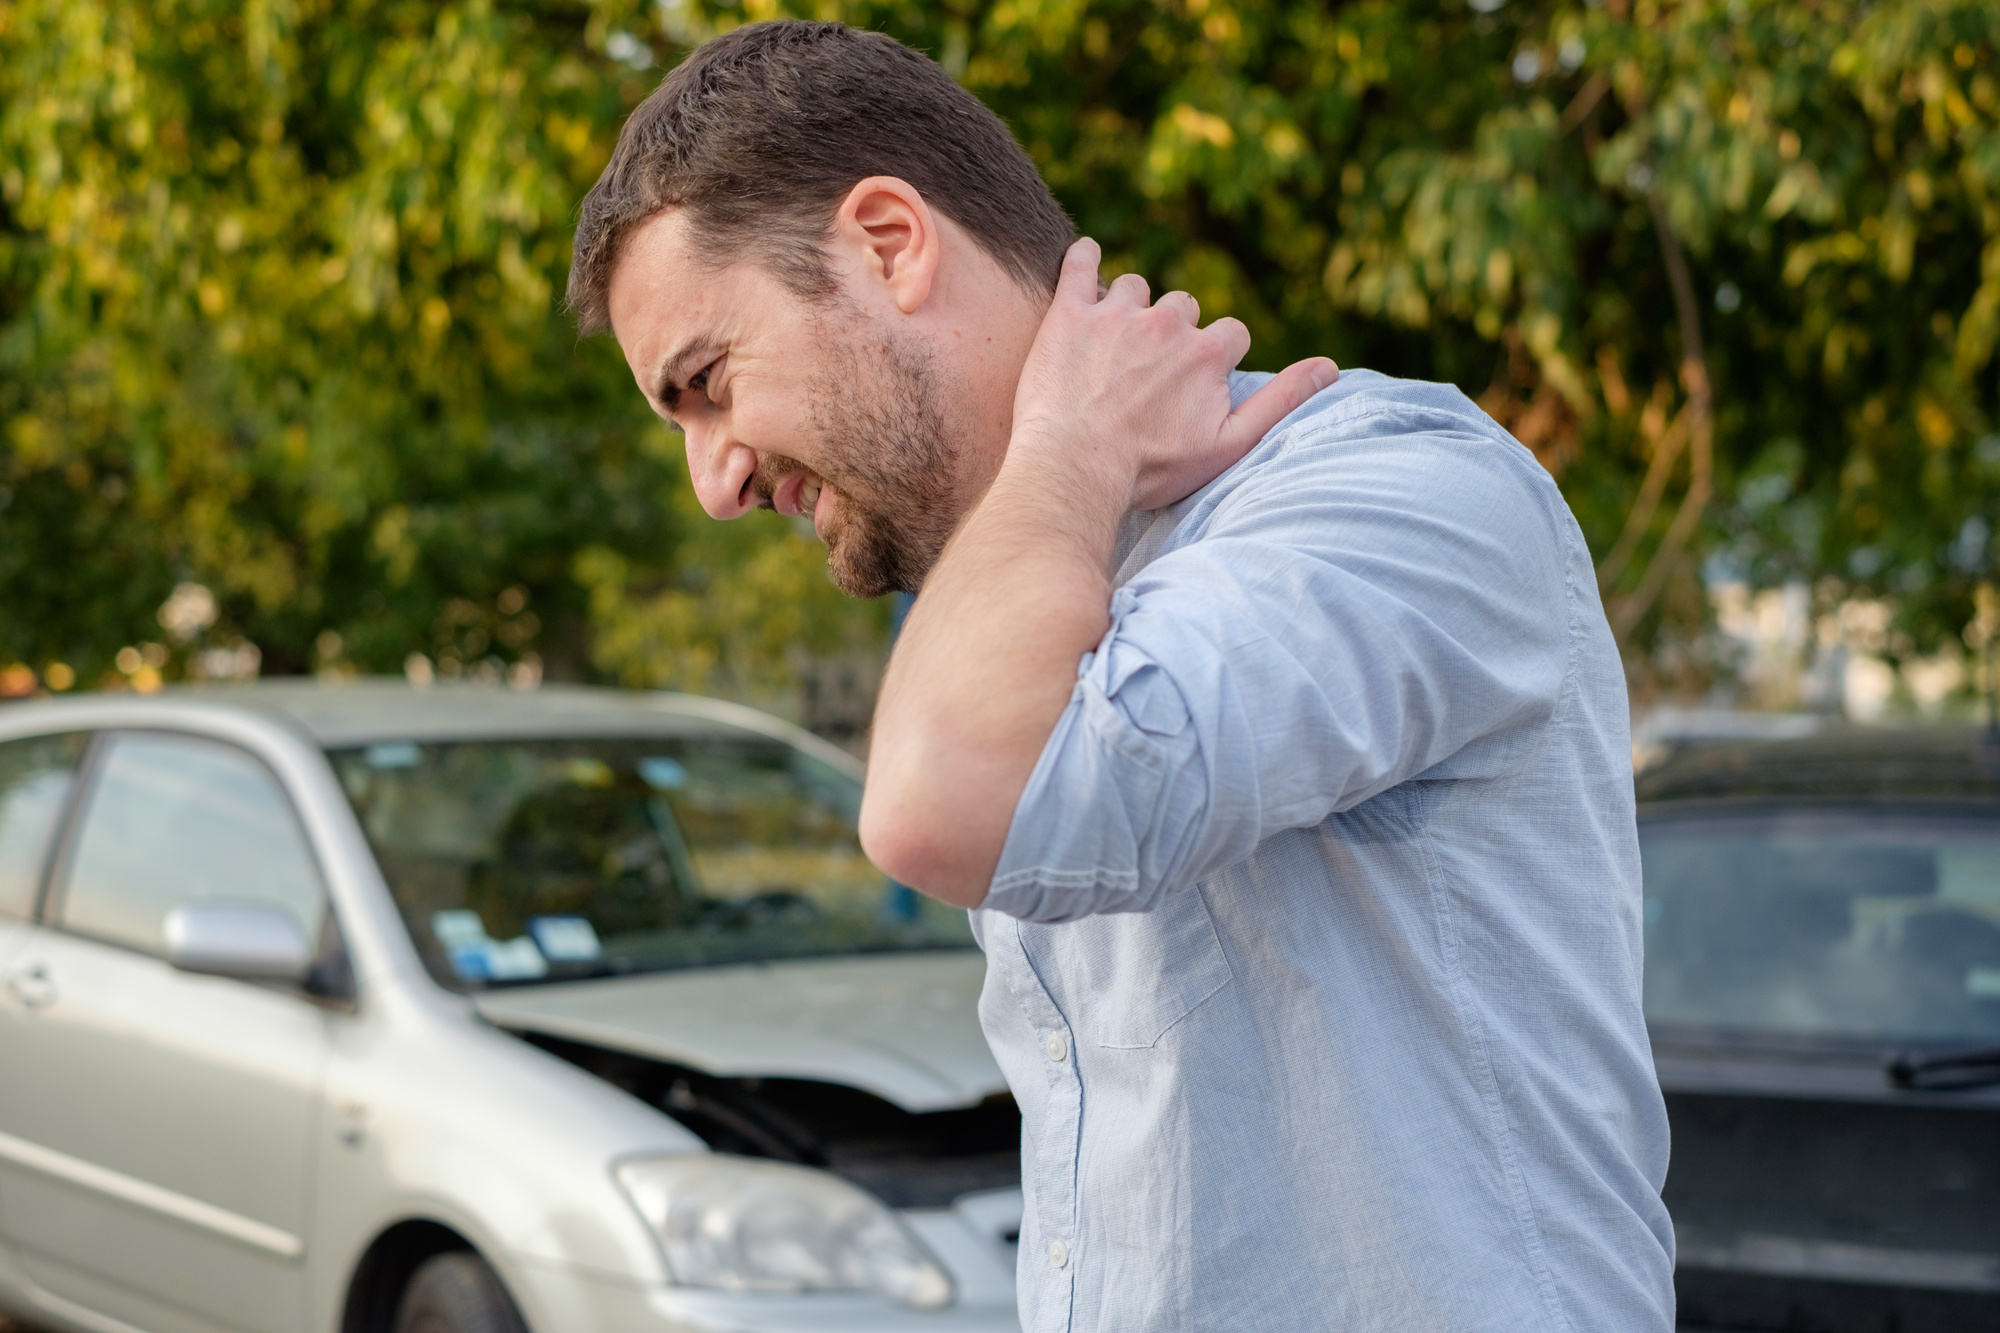 9 of the Most Common Car Accident Injuries to Avoid - Cummings Law